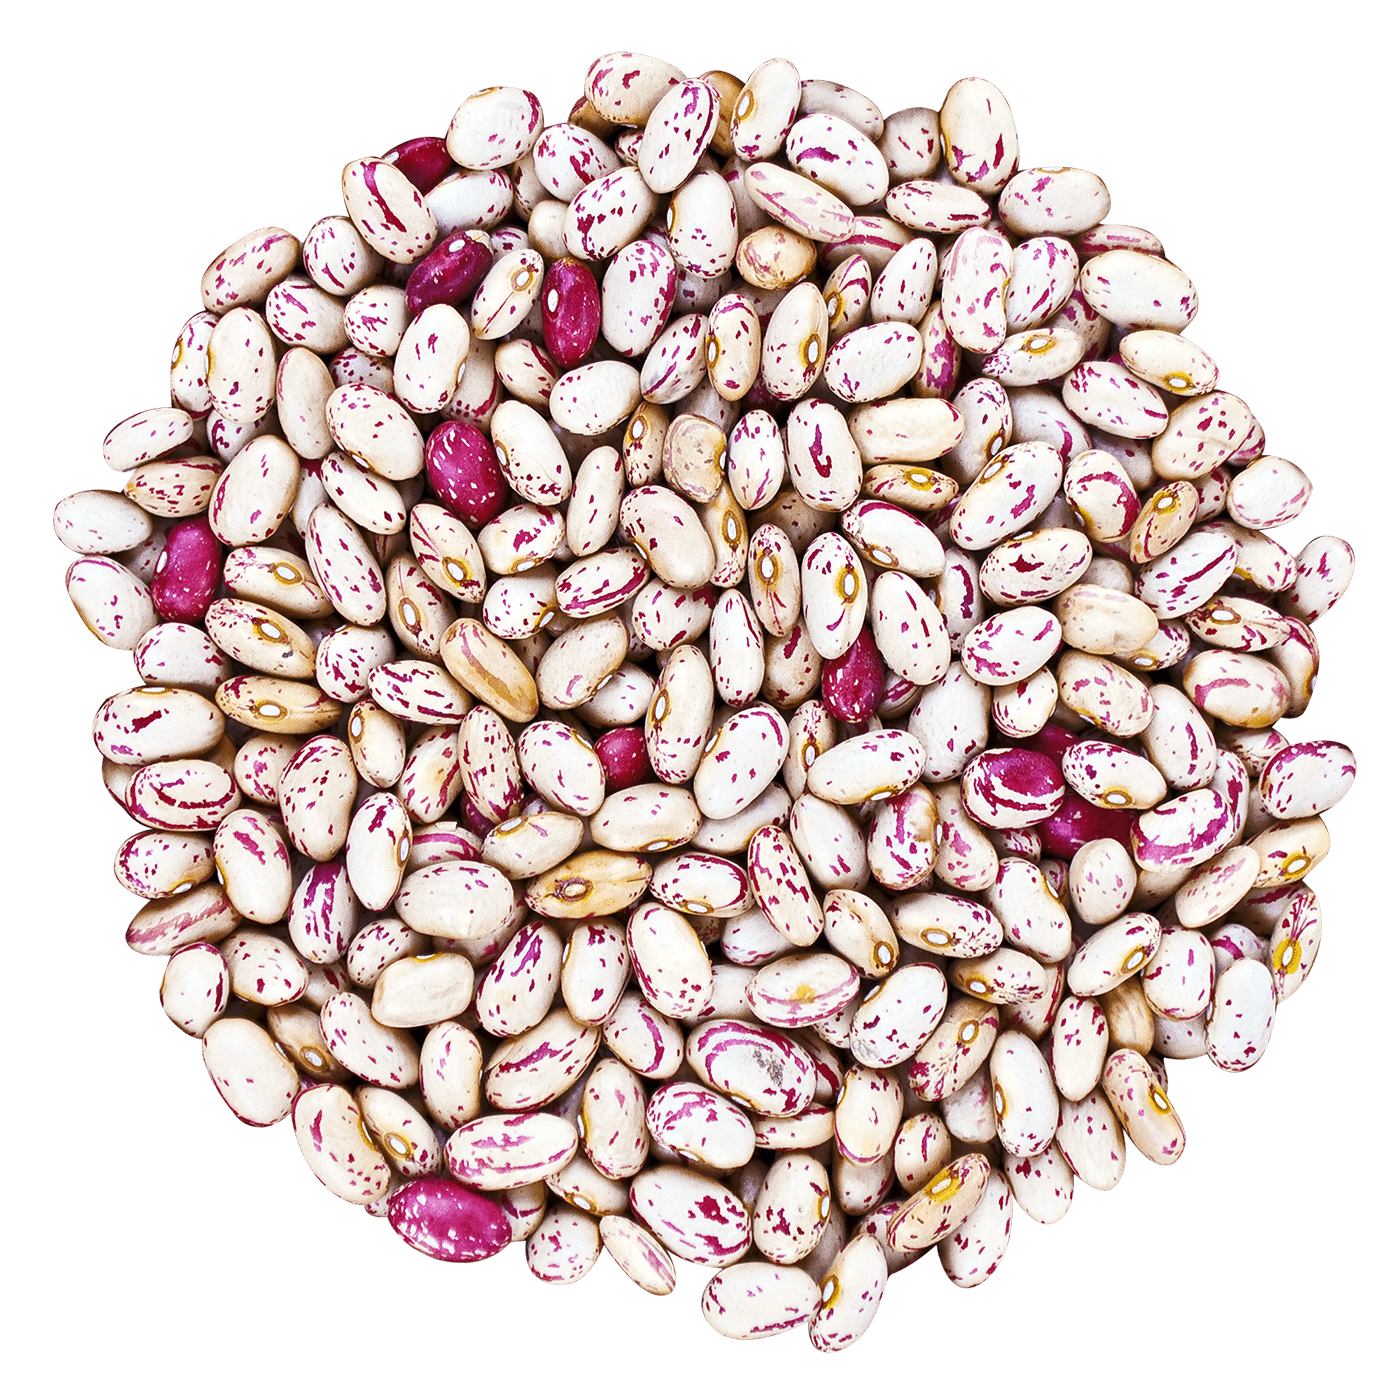 Cranberry Beans without bag